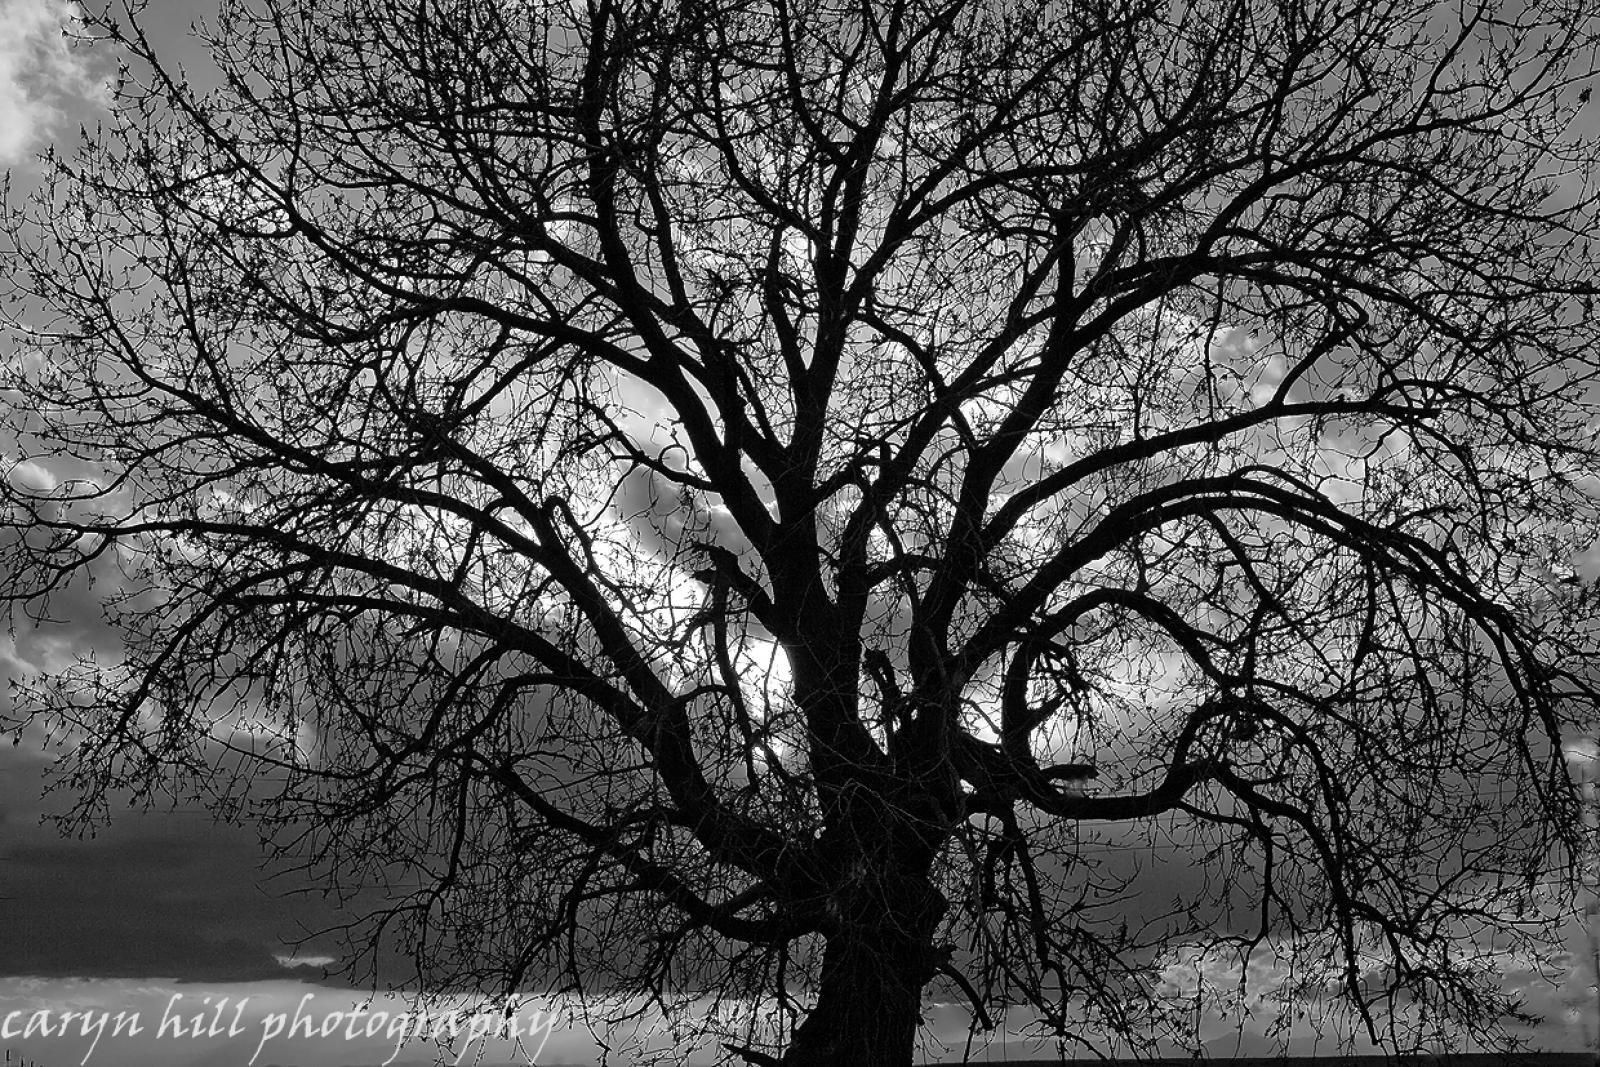 Black and white photos trees general impression this is what black and white does well nice